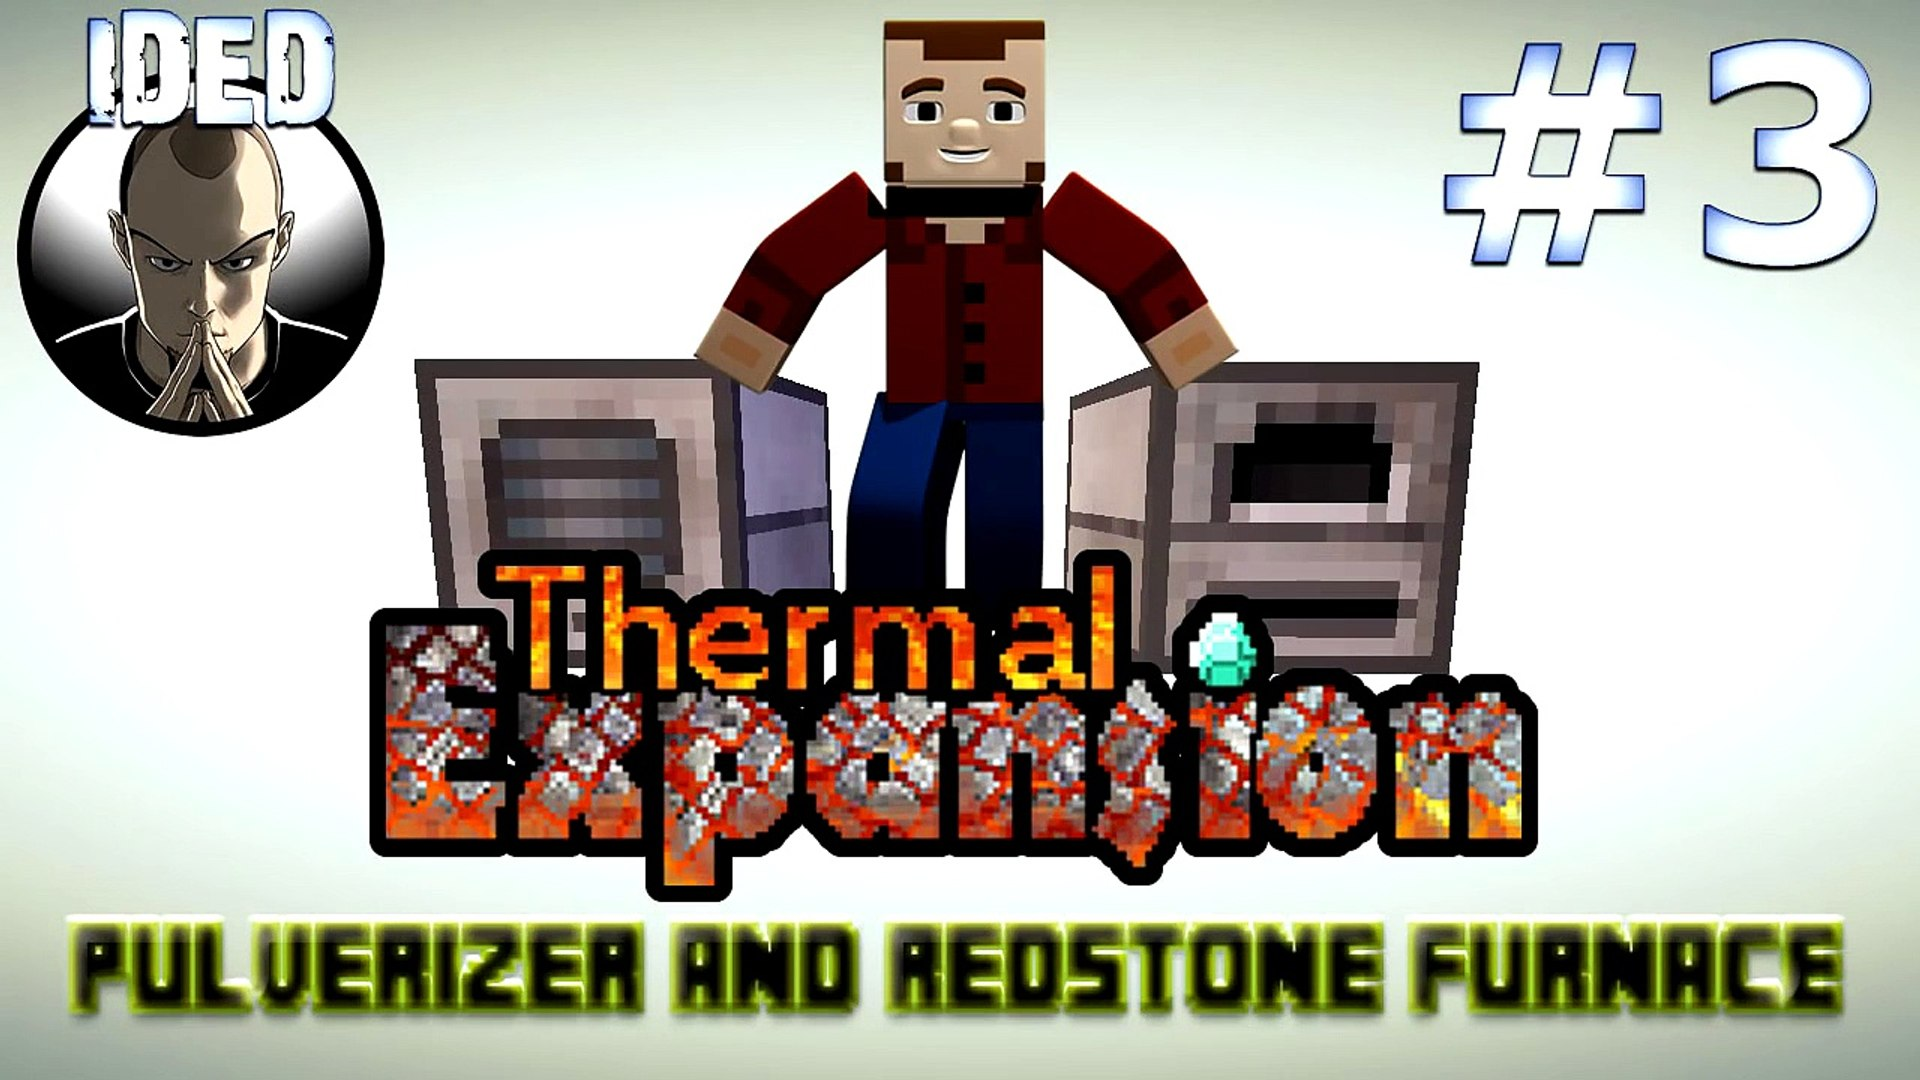 Thermal Expansion Tutorial - Pulverizer, Redstone Furnace with setup guide  - Minecraft Mod